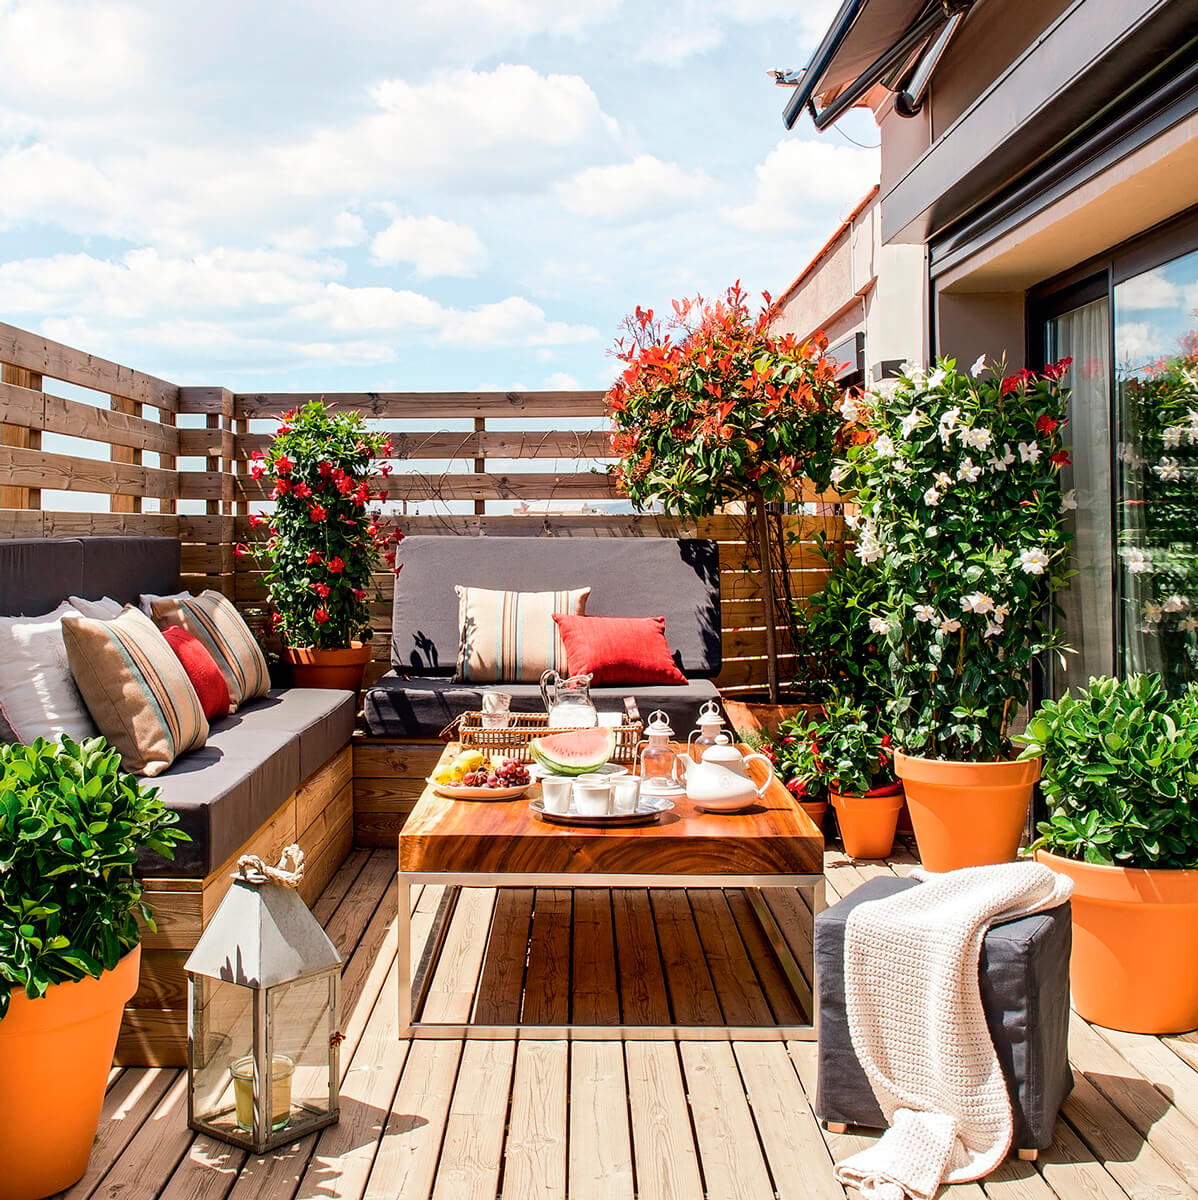 10 ideas para decorar terrazas y balcones handfie diy for Living de madera para terraza